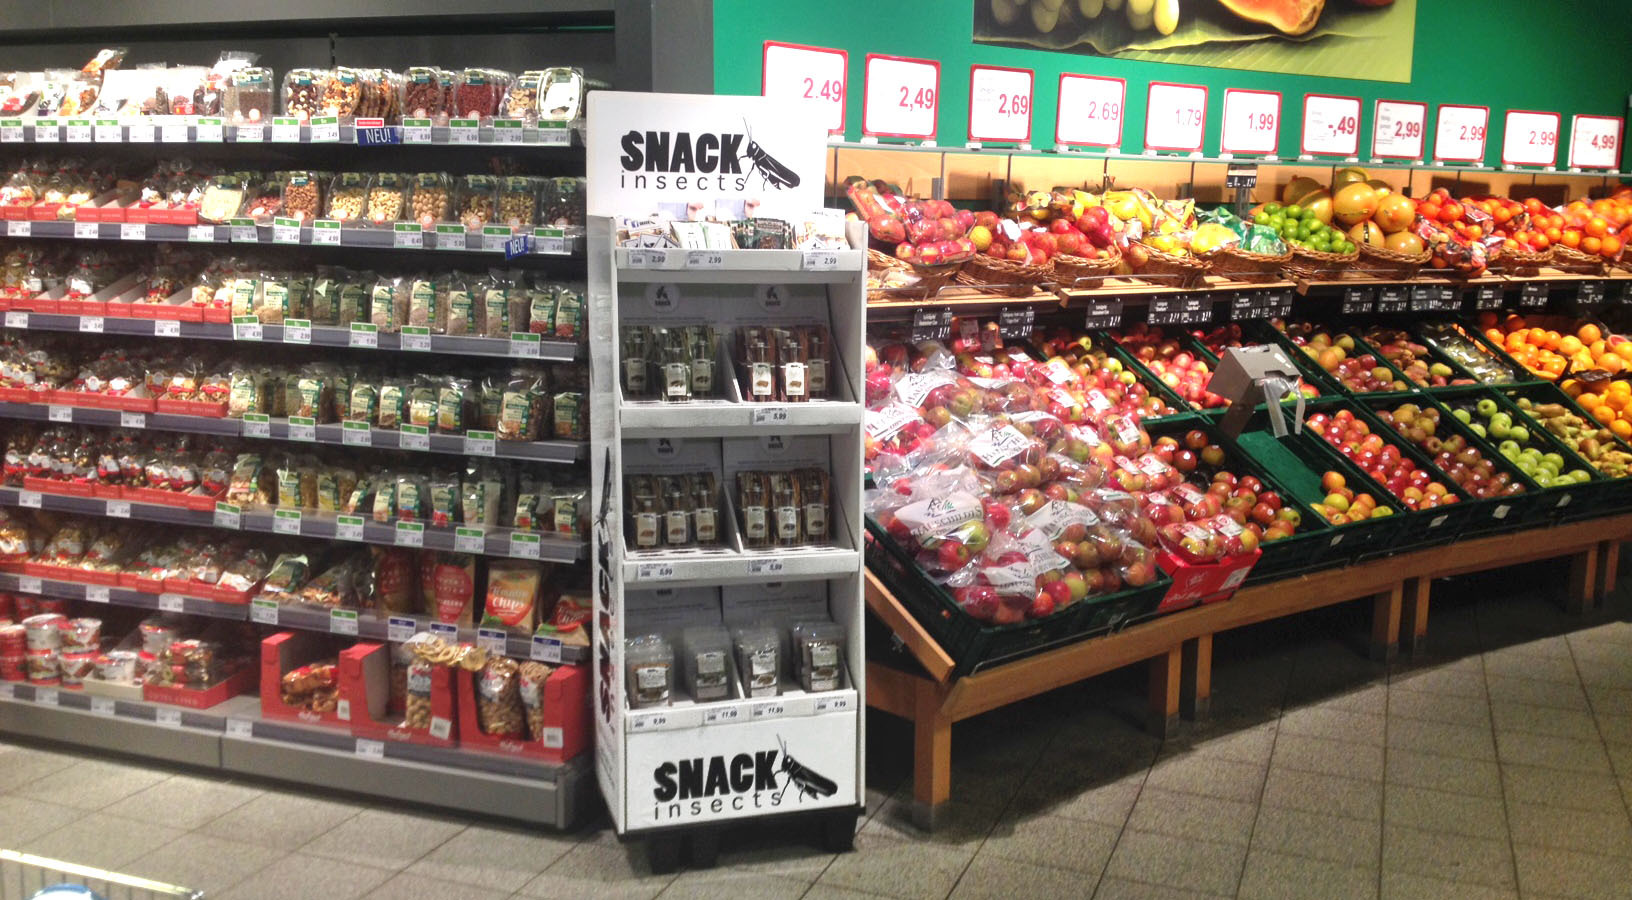 Snack-Insects_Standdisplay_im_Supermarkt